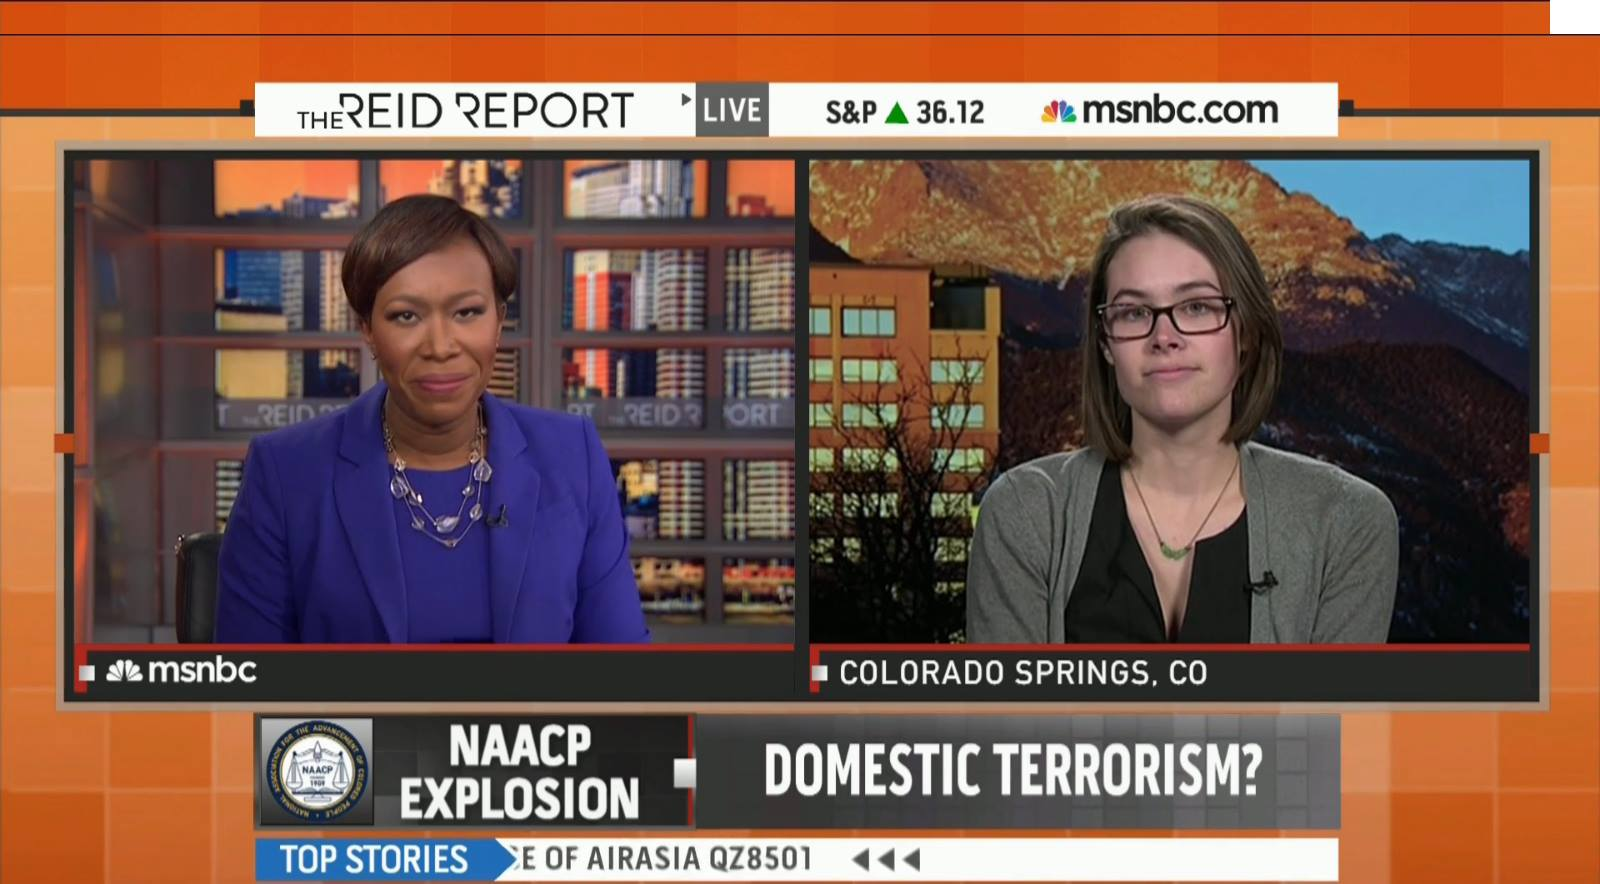 On Jan. 8, 2015,   I appeared on MSNBC's The Reid Report   to discuss what was known about the case at the time.